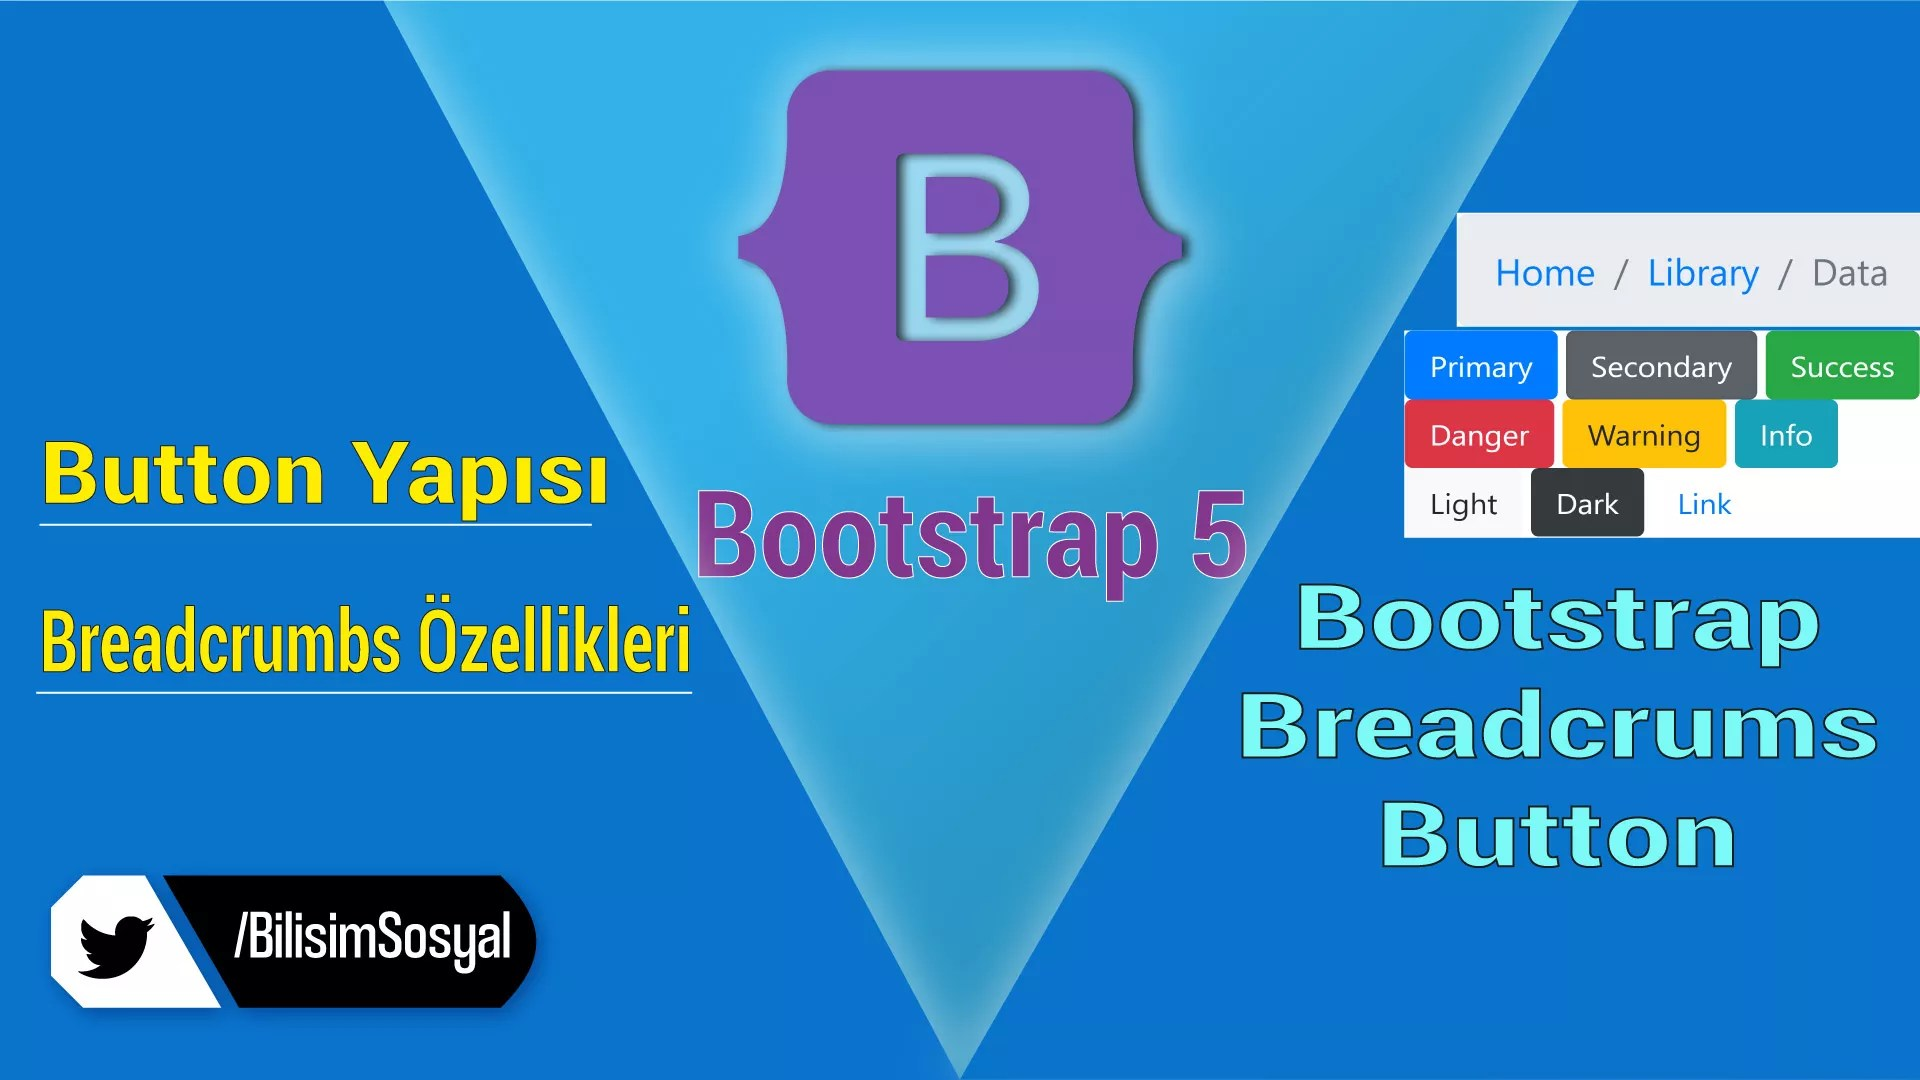 Bootstrap Components BreadCrumbs Buttons – Bootstrap 5 ile Responsive Tasarım Dersleri 2020